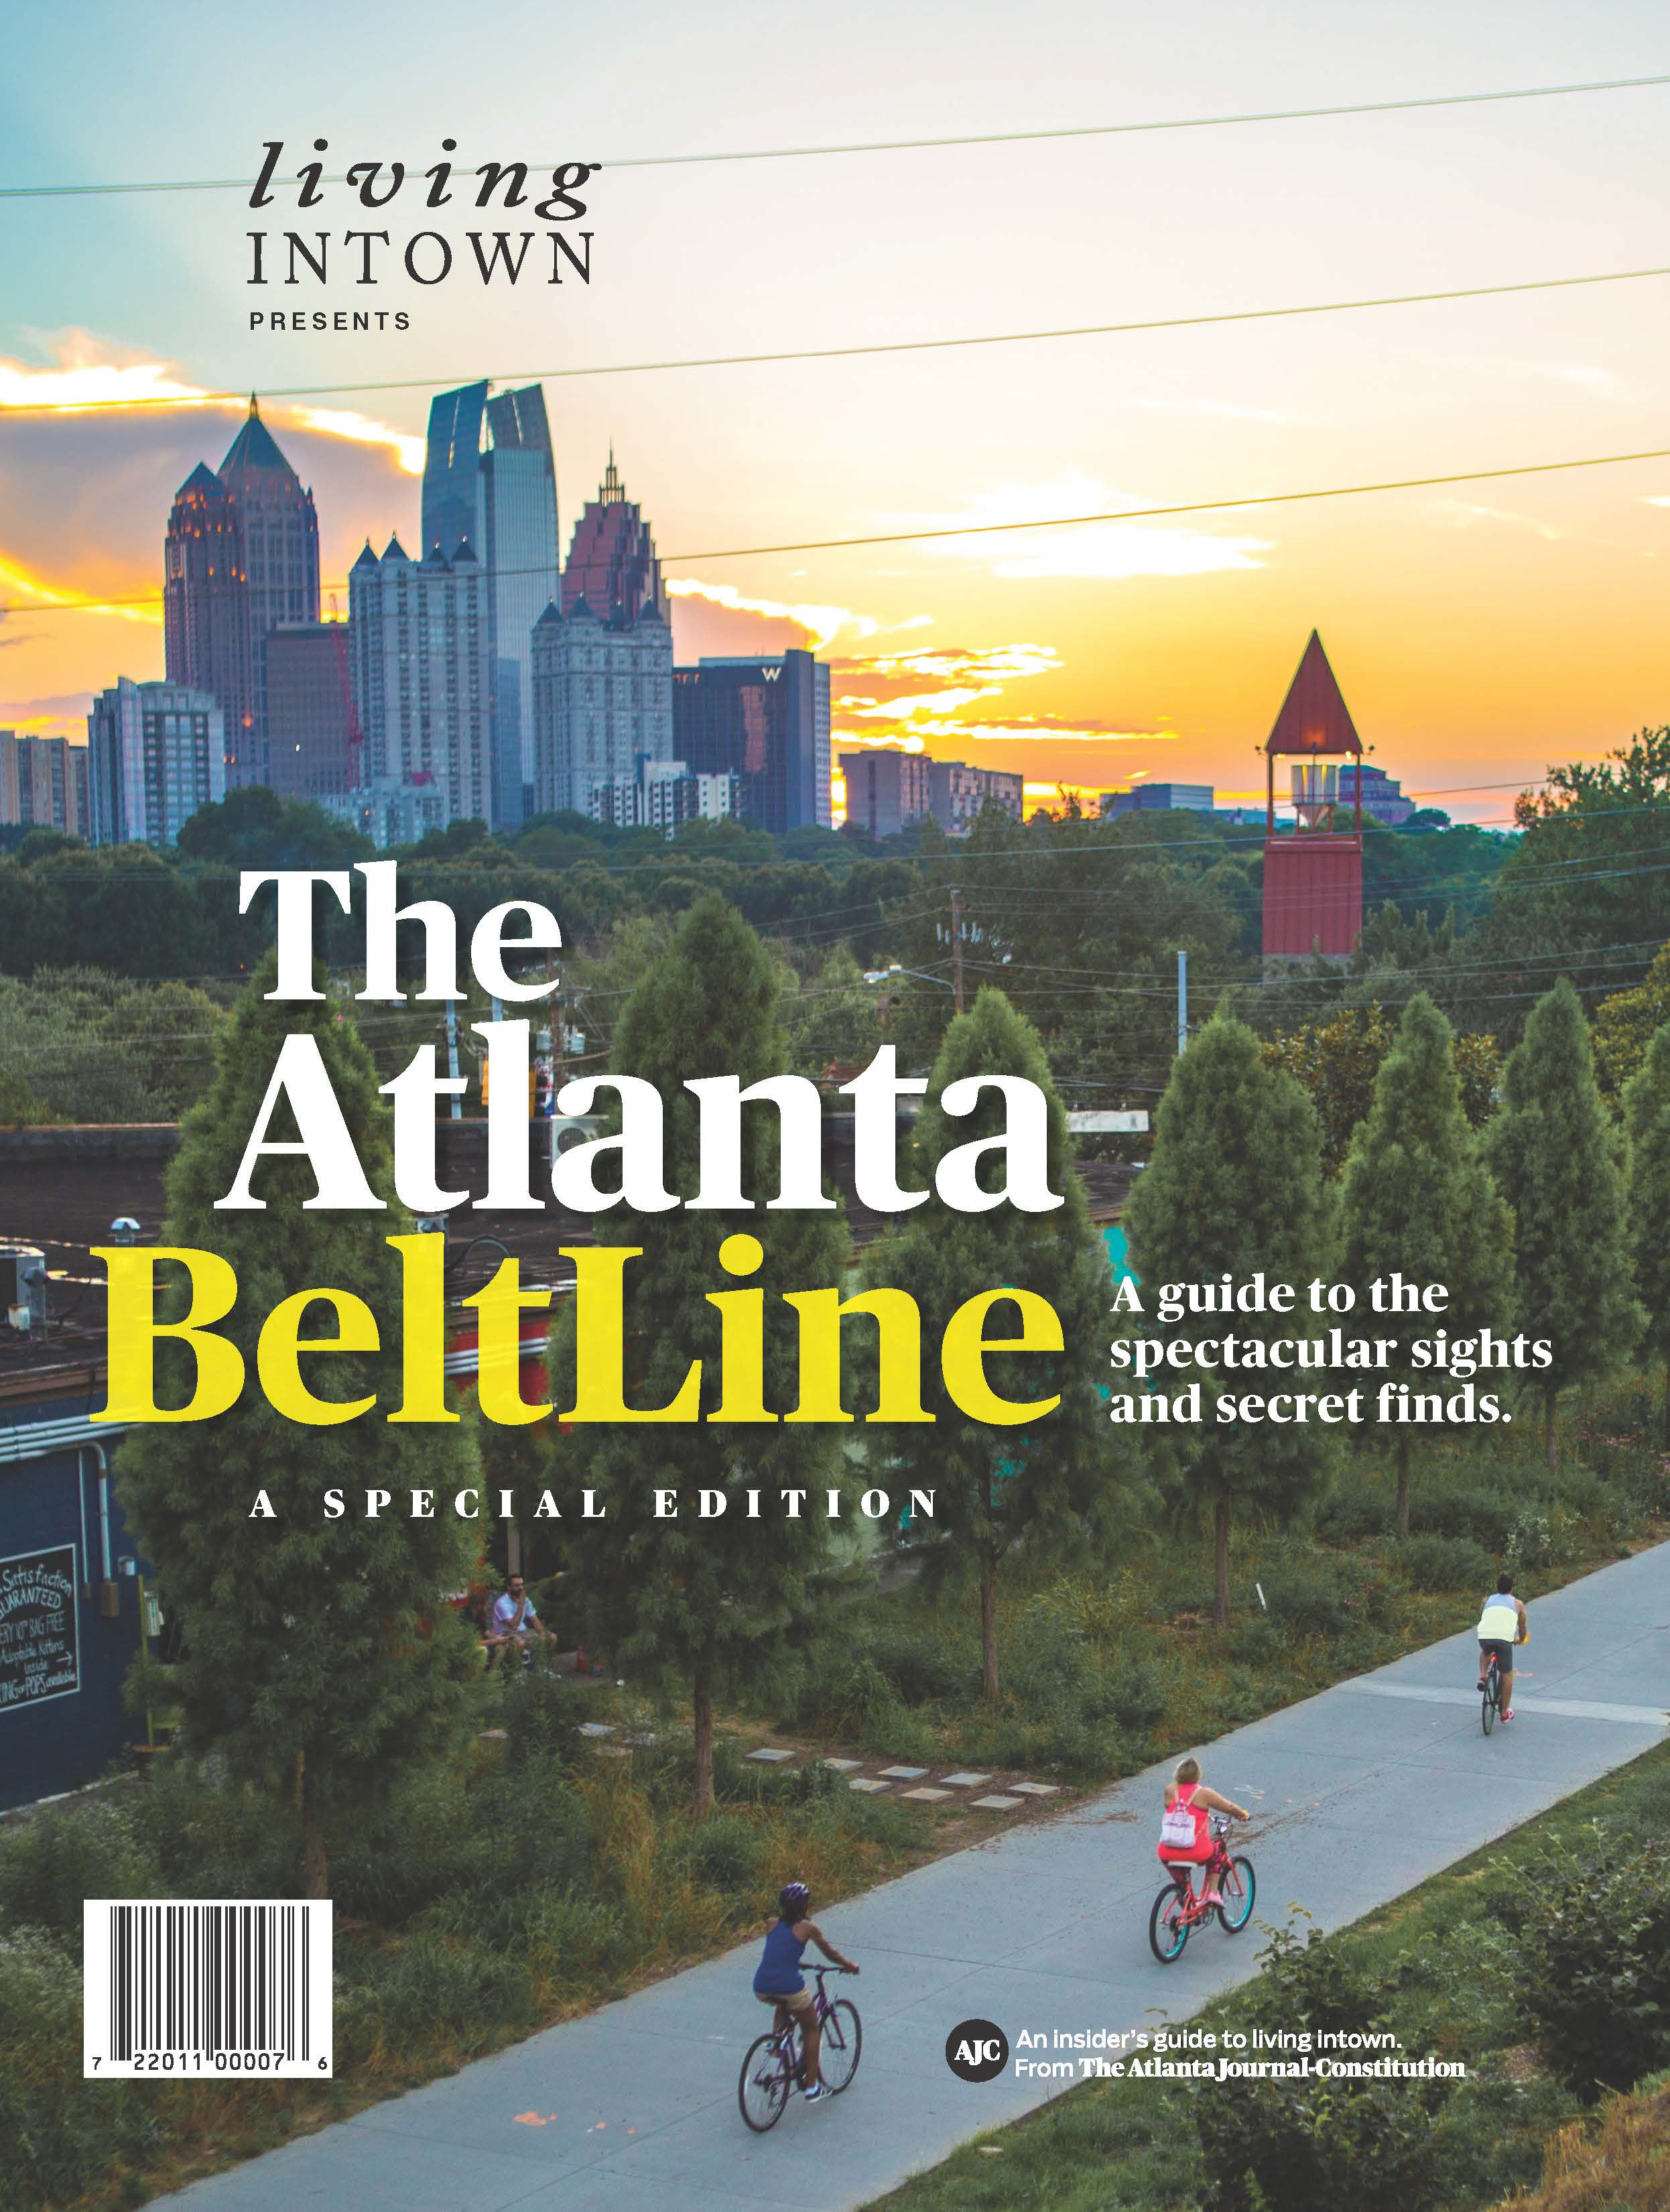 Living Intown presents The Atlanta BeltLine